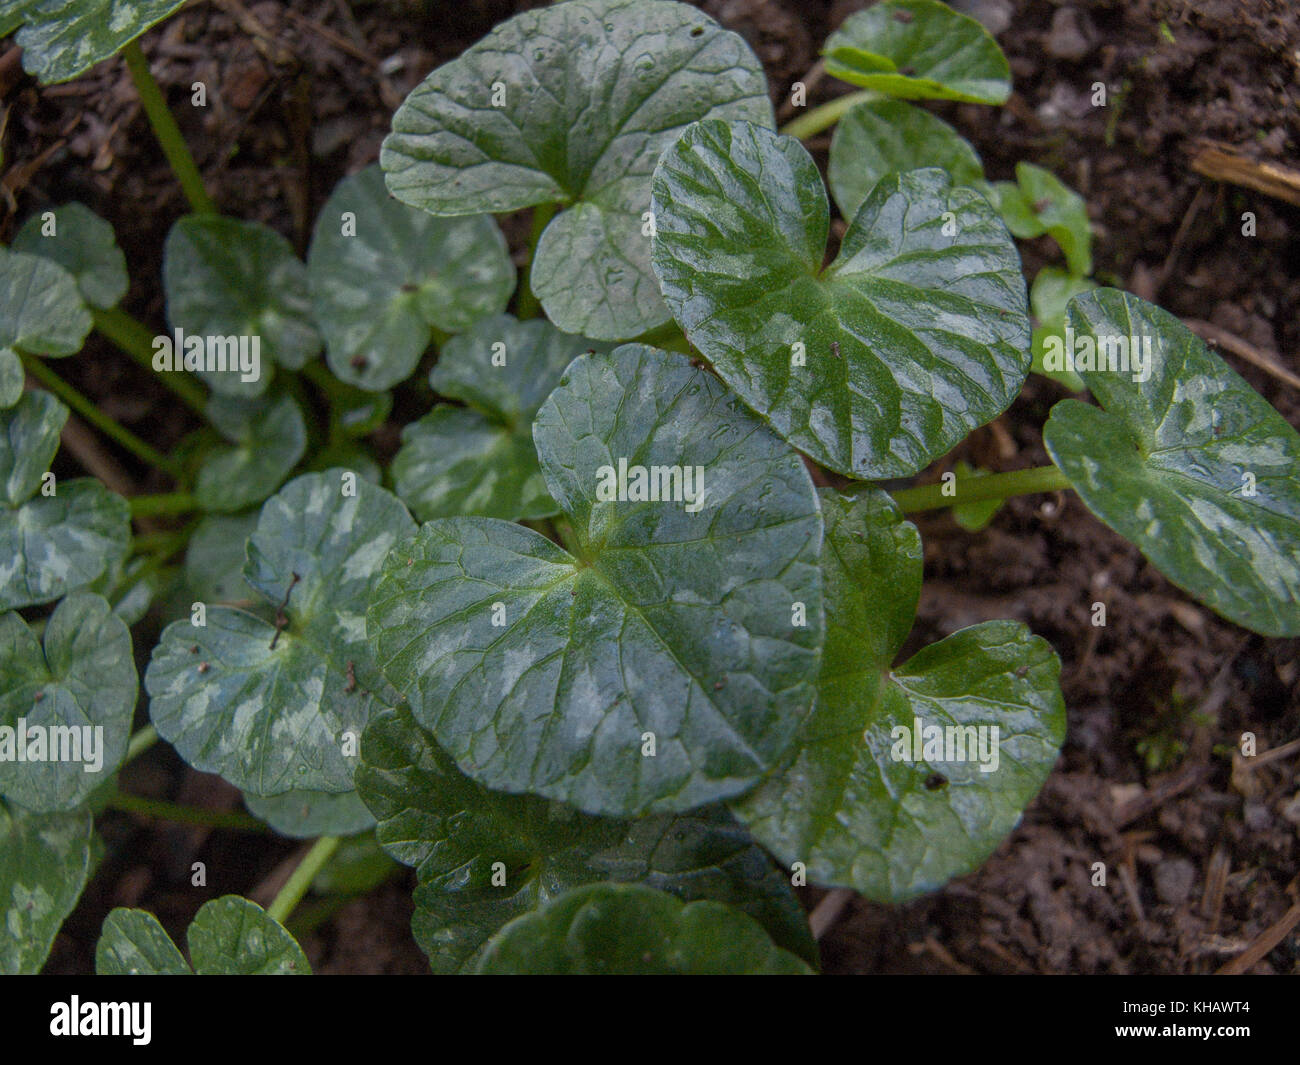 Leaves of Lesser Celandine (Ranunculus ficaria). Root bulb shape gave rise to name of Figwort. - Stock Image